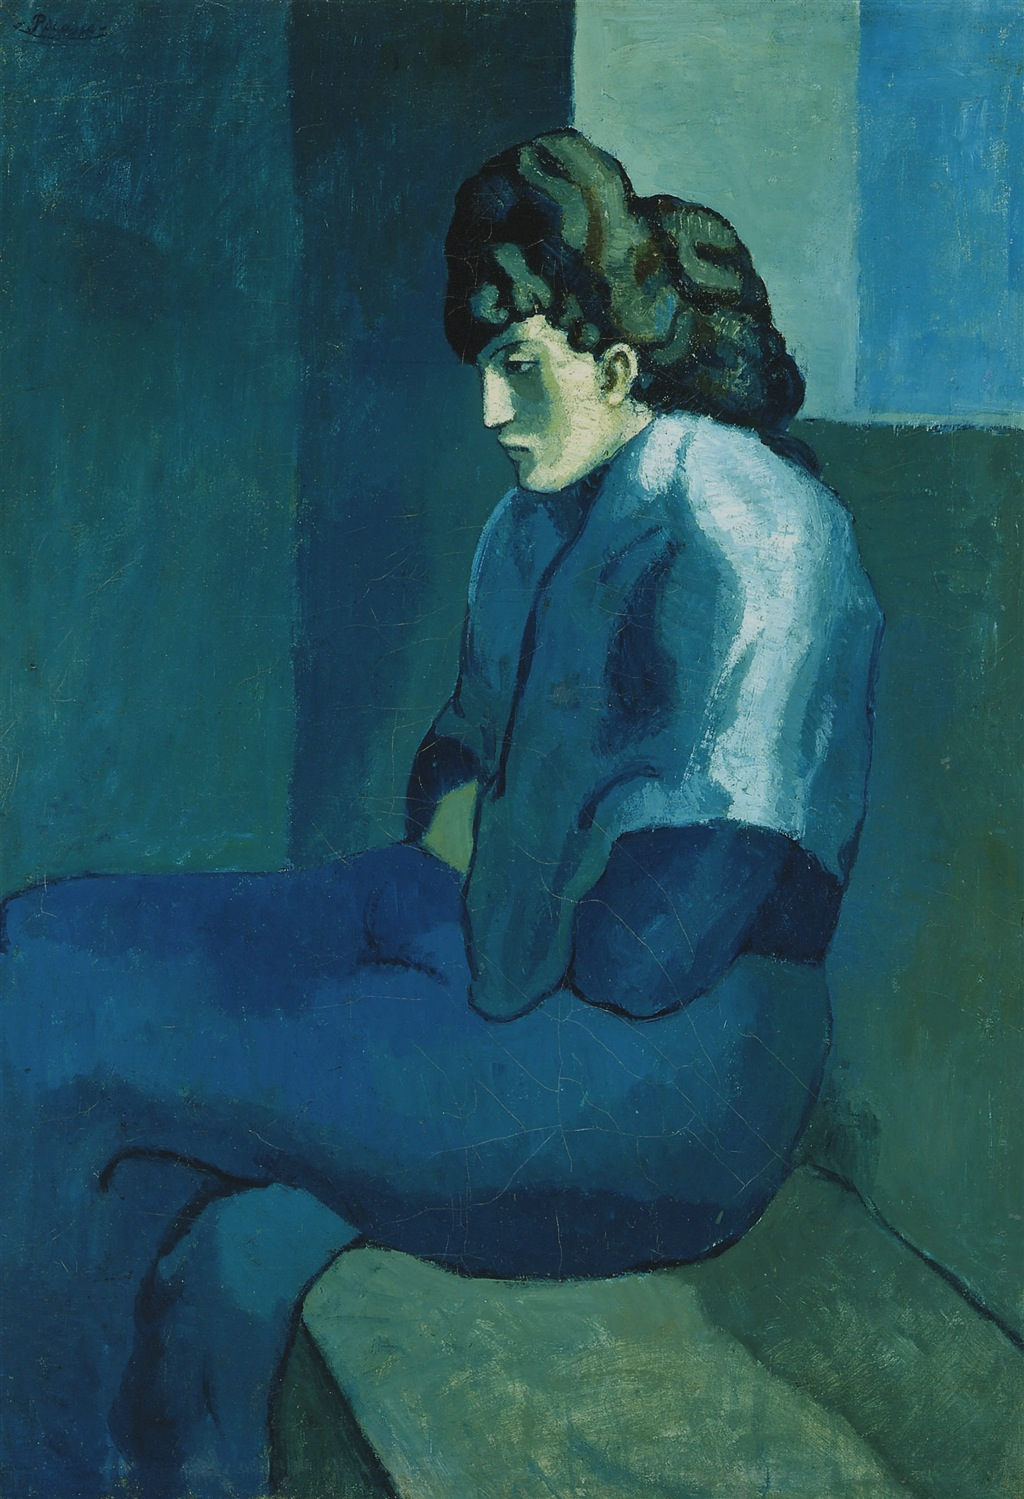 file pablo picasso 1902 03 femme assise melancholy woman oil on canvas 100 x 69 2 cm the. Black Bedroom Furniture Sets. Home Design Ideas